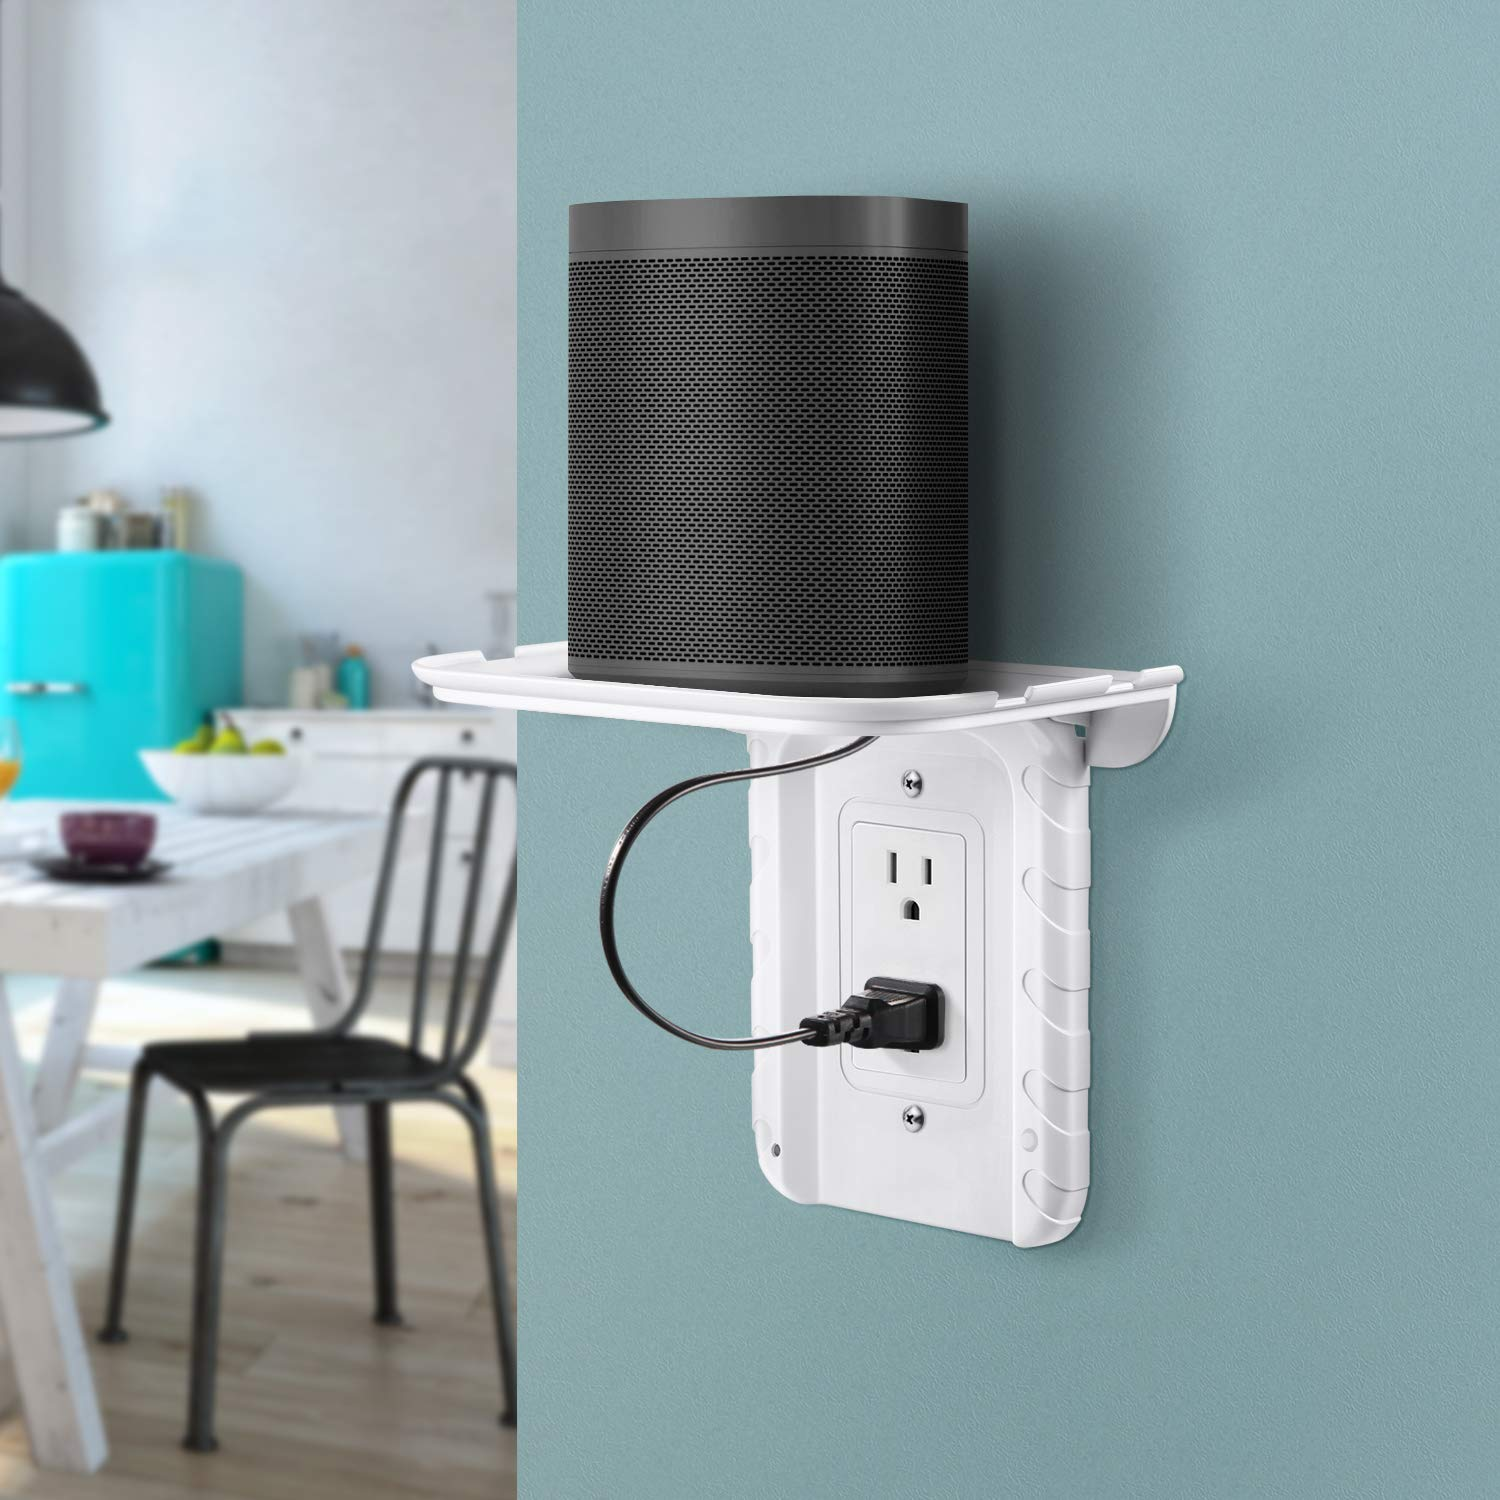 Maxdot Foldable Outlet Shelf Phone Stand Holder Built in Cable Channel for Hidden Cord and Extra Custom Short Cord Duplex Outlet